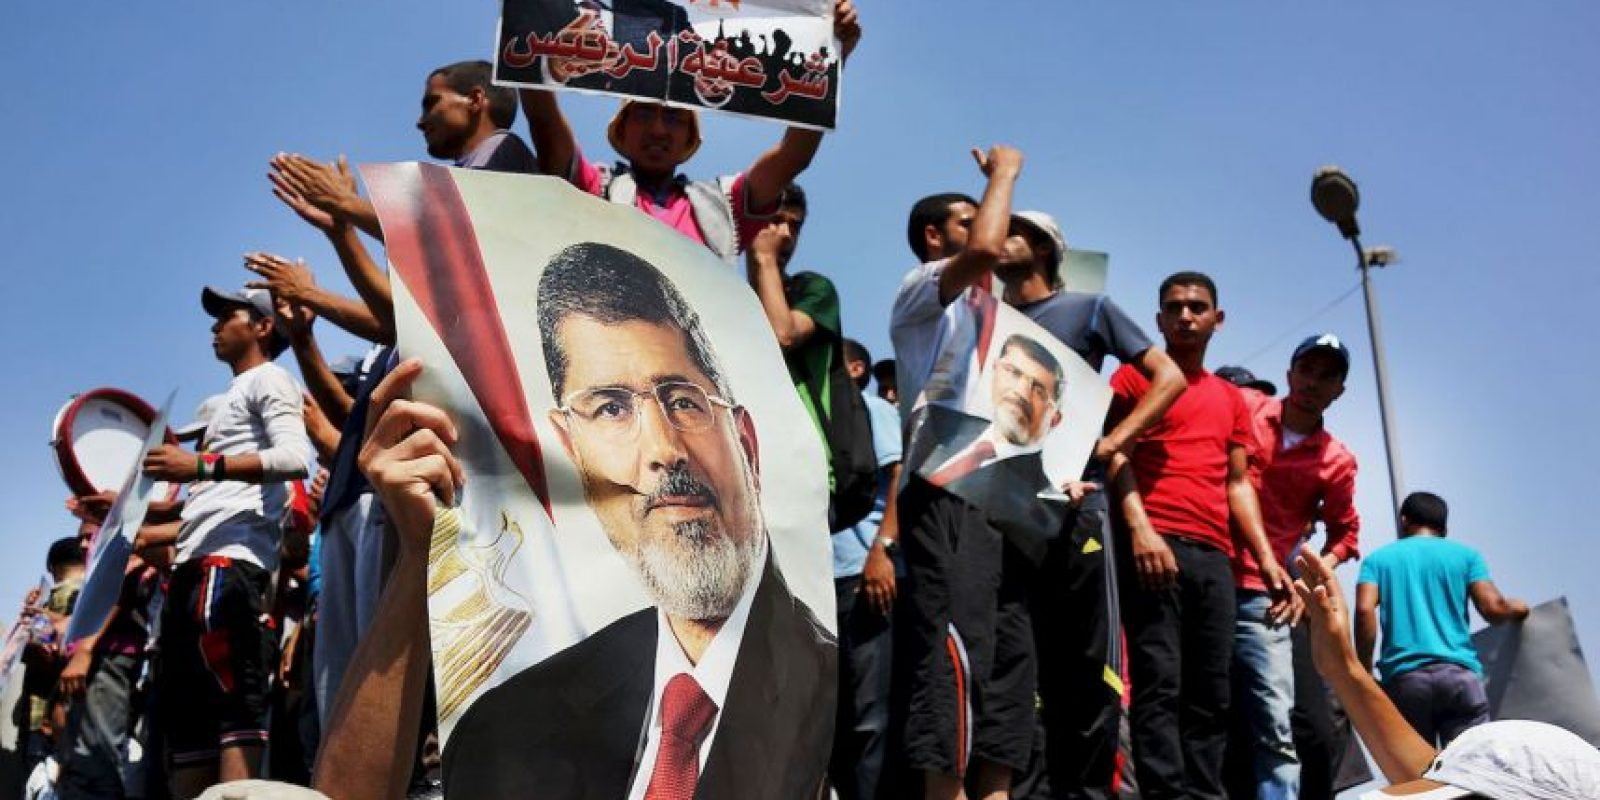 """El juicio de Morsi careció de transparencia"", dijo a este medio el experto en Medio Oriente, Fawaz A. Gerges, profesor del London School of Economics. Foto: Getty Images"